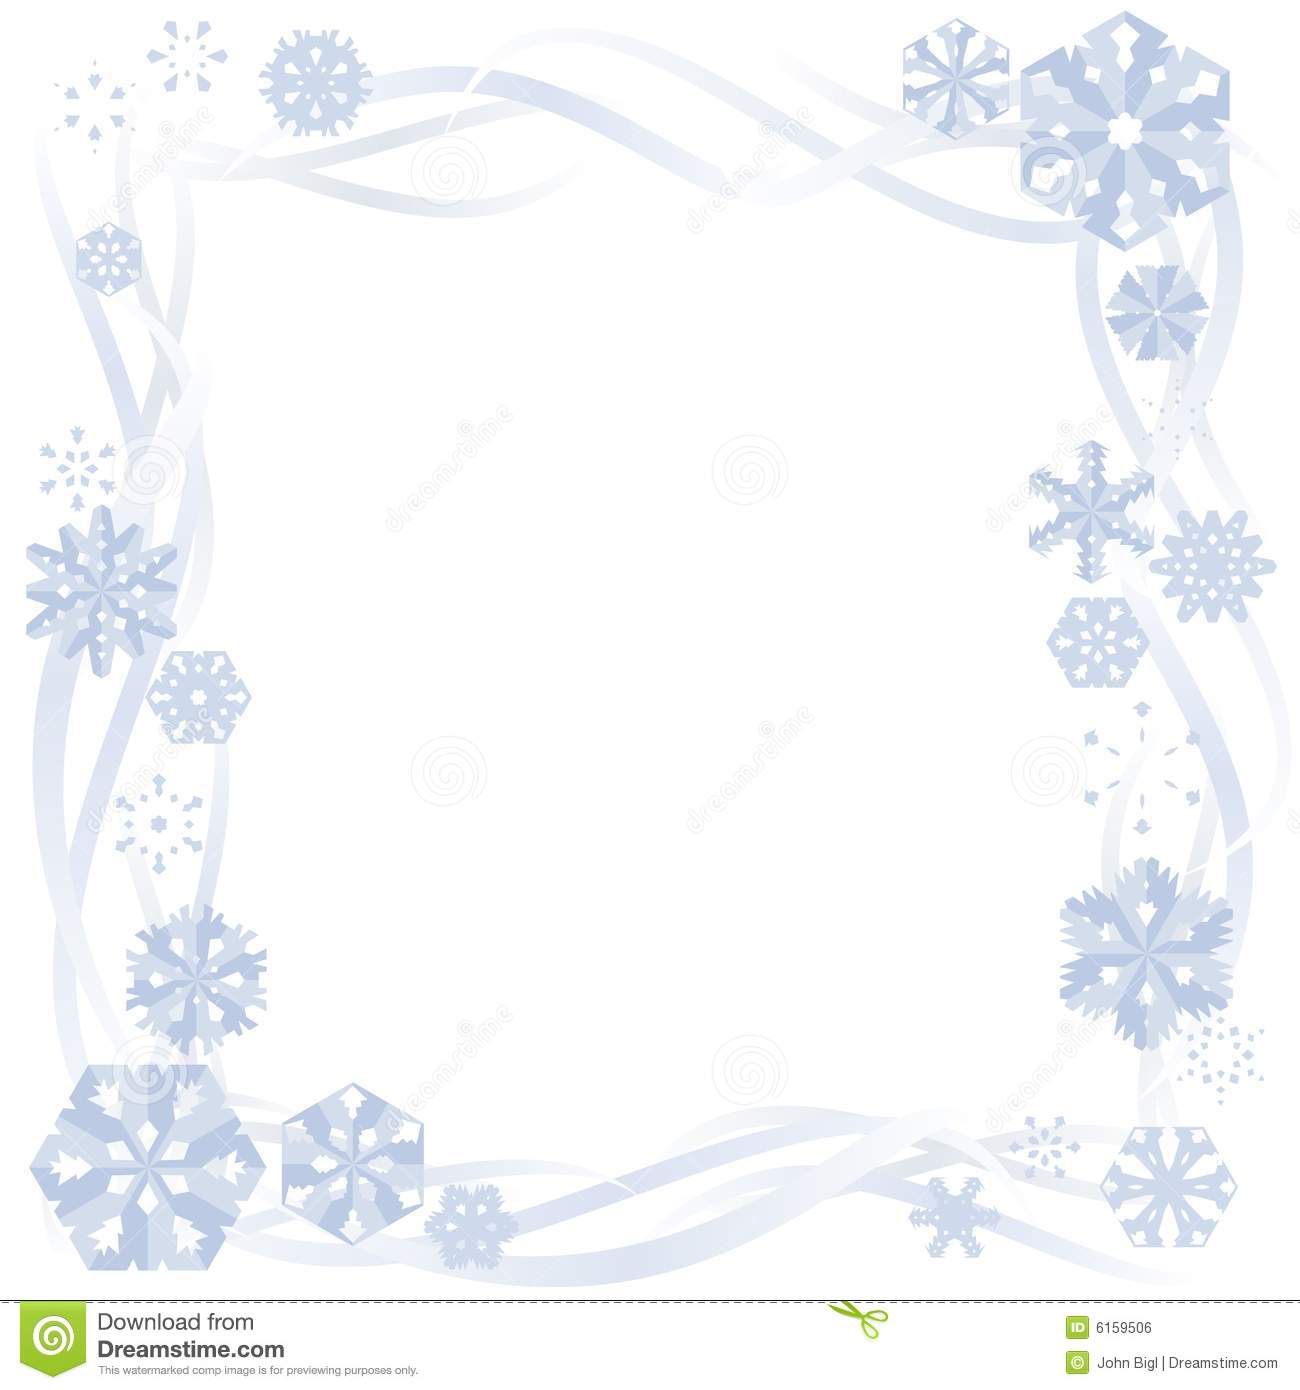 Boarder clipart line art.  collection of winter